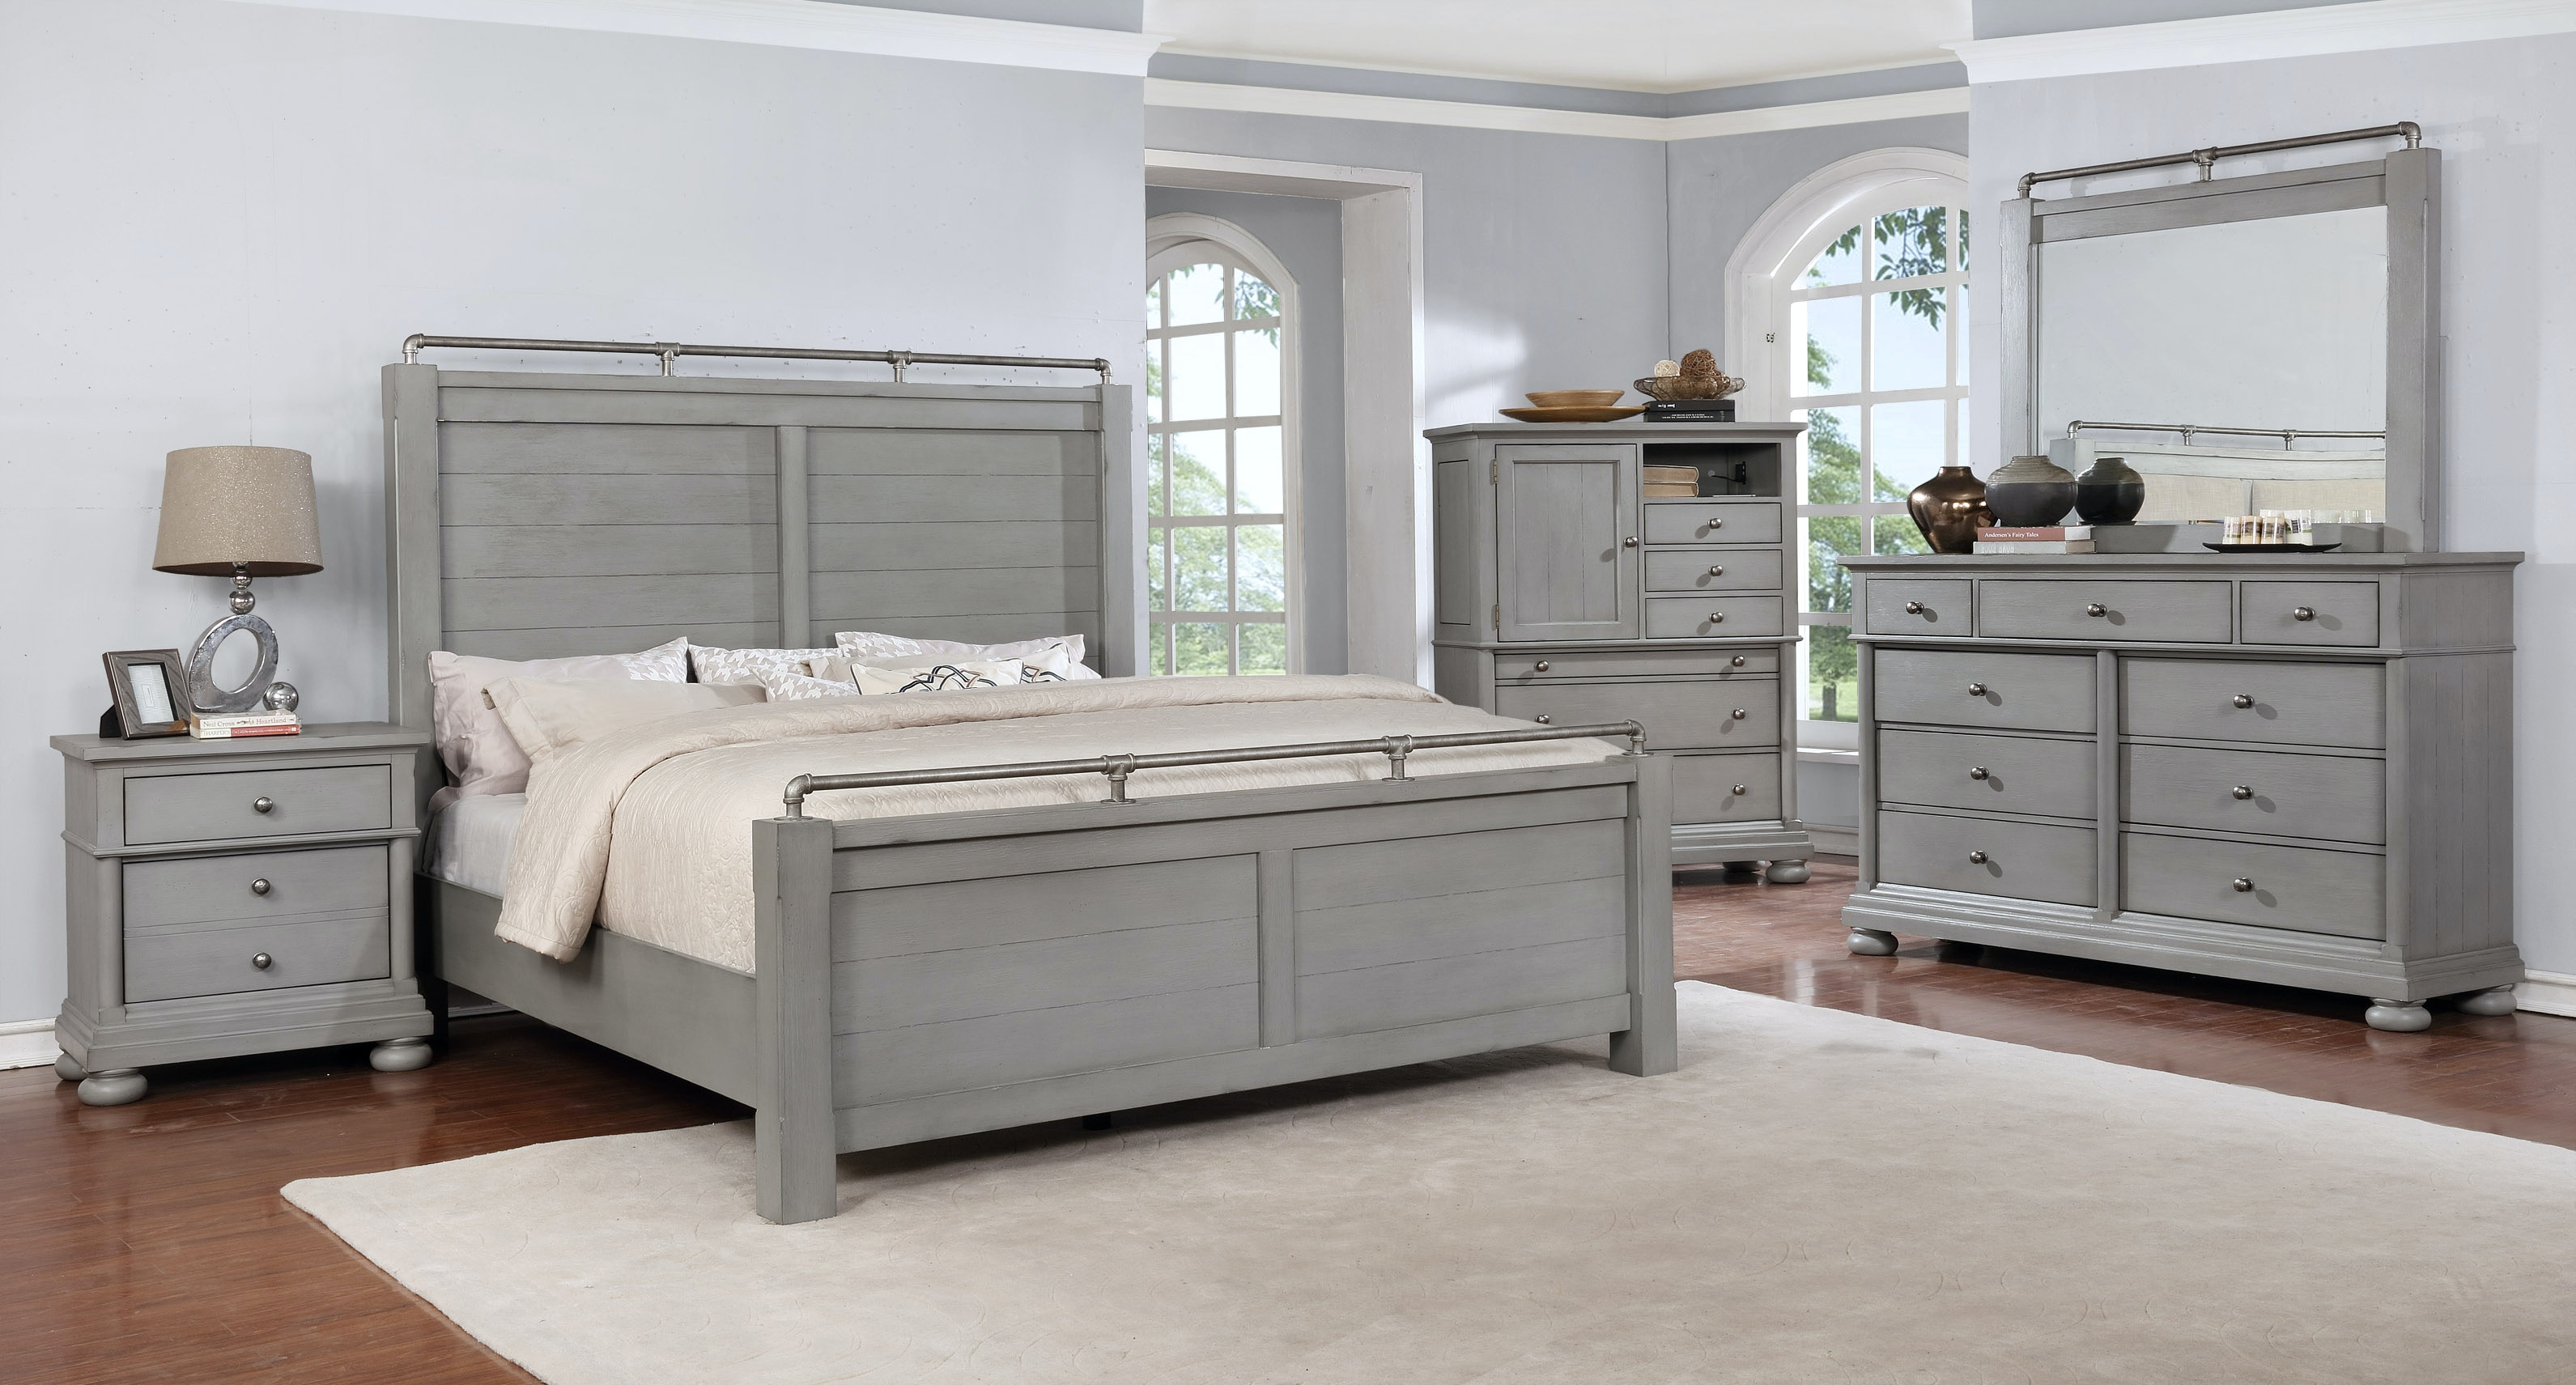 Avalon Queen Bed 774235 37 27